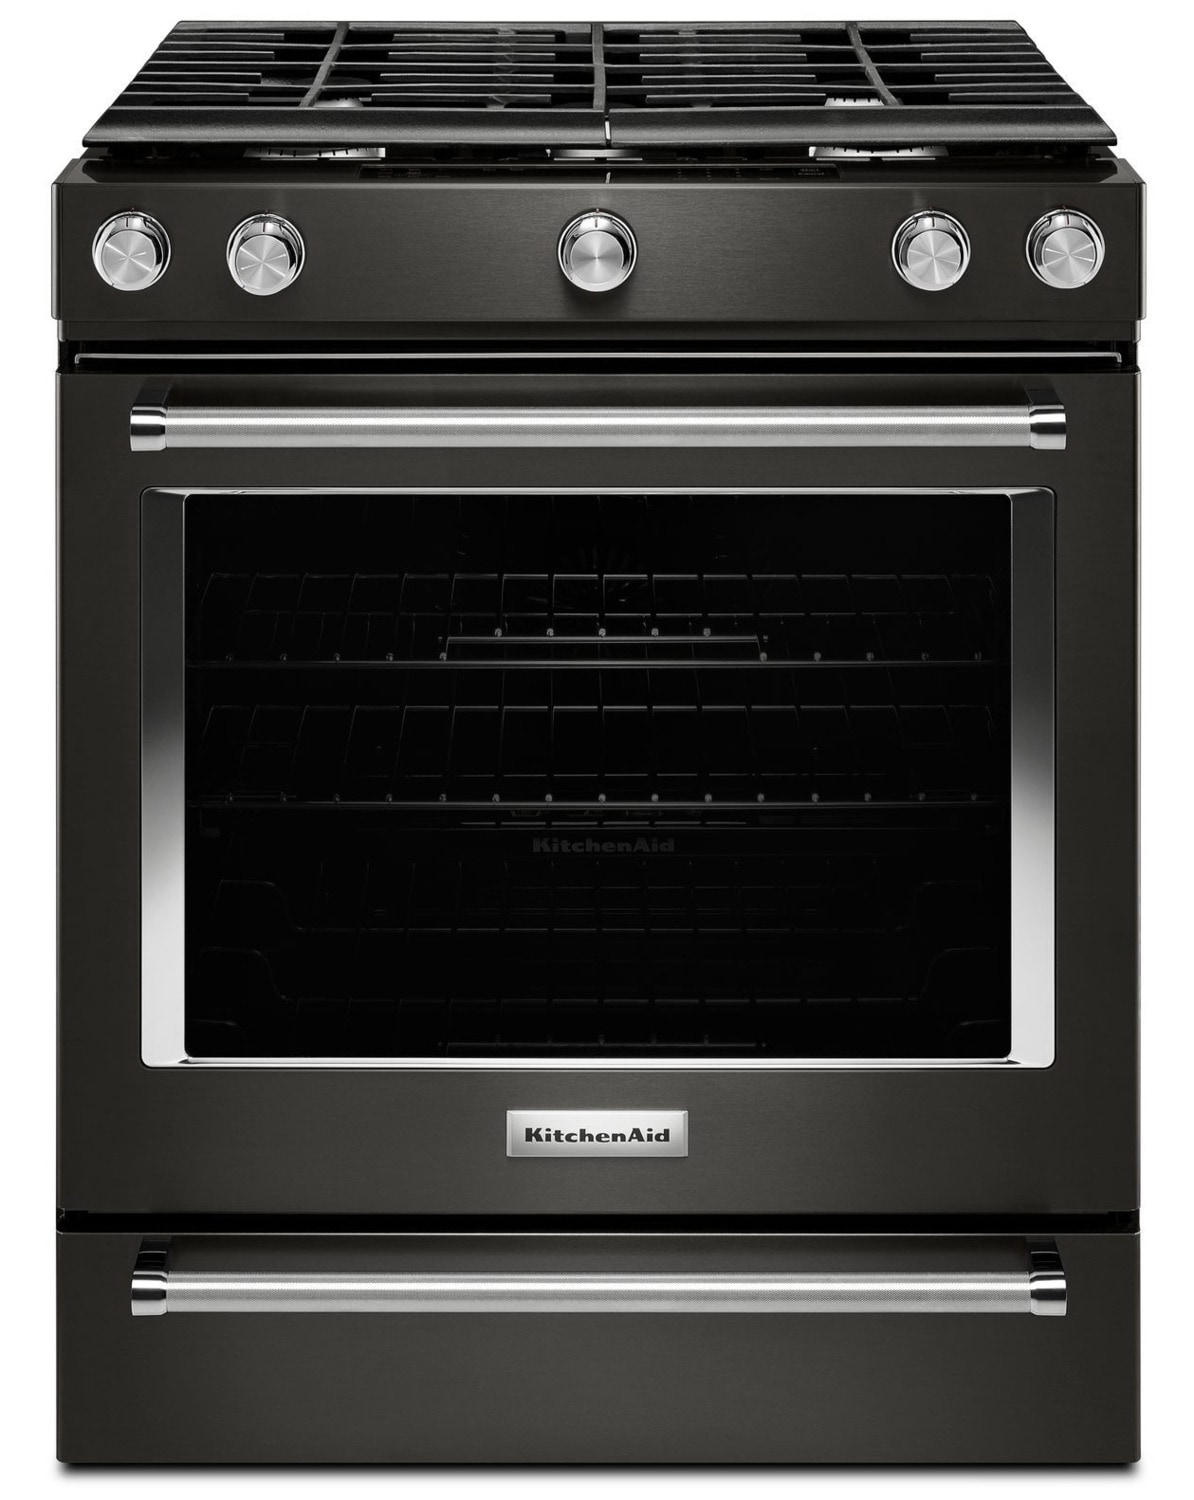 KitchenAid Black Stainless Steel Slide-In Gas Convection Range (5.8 Cu. Ft.) - KSGG700EBS